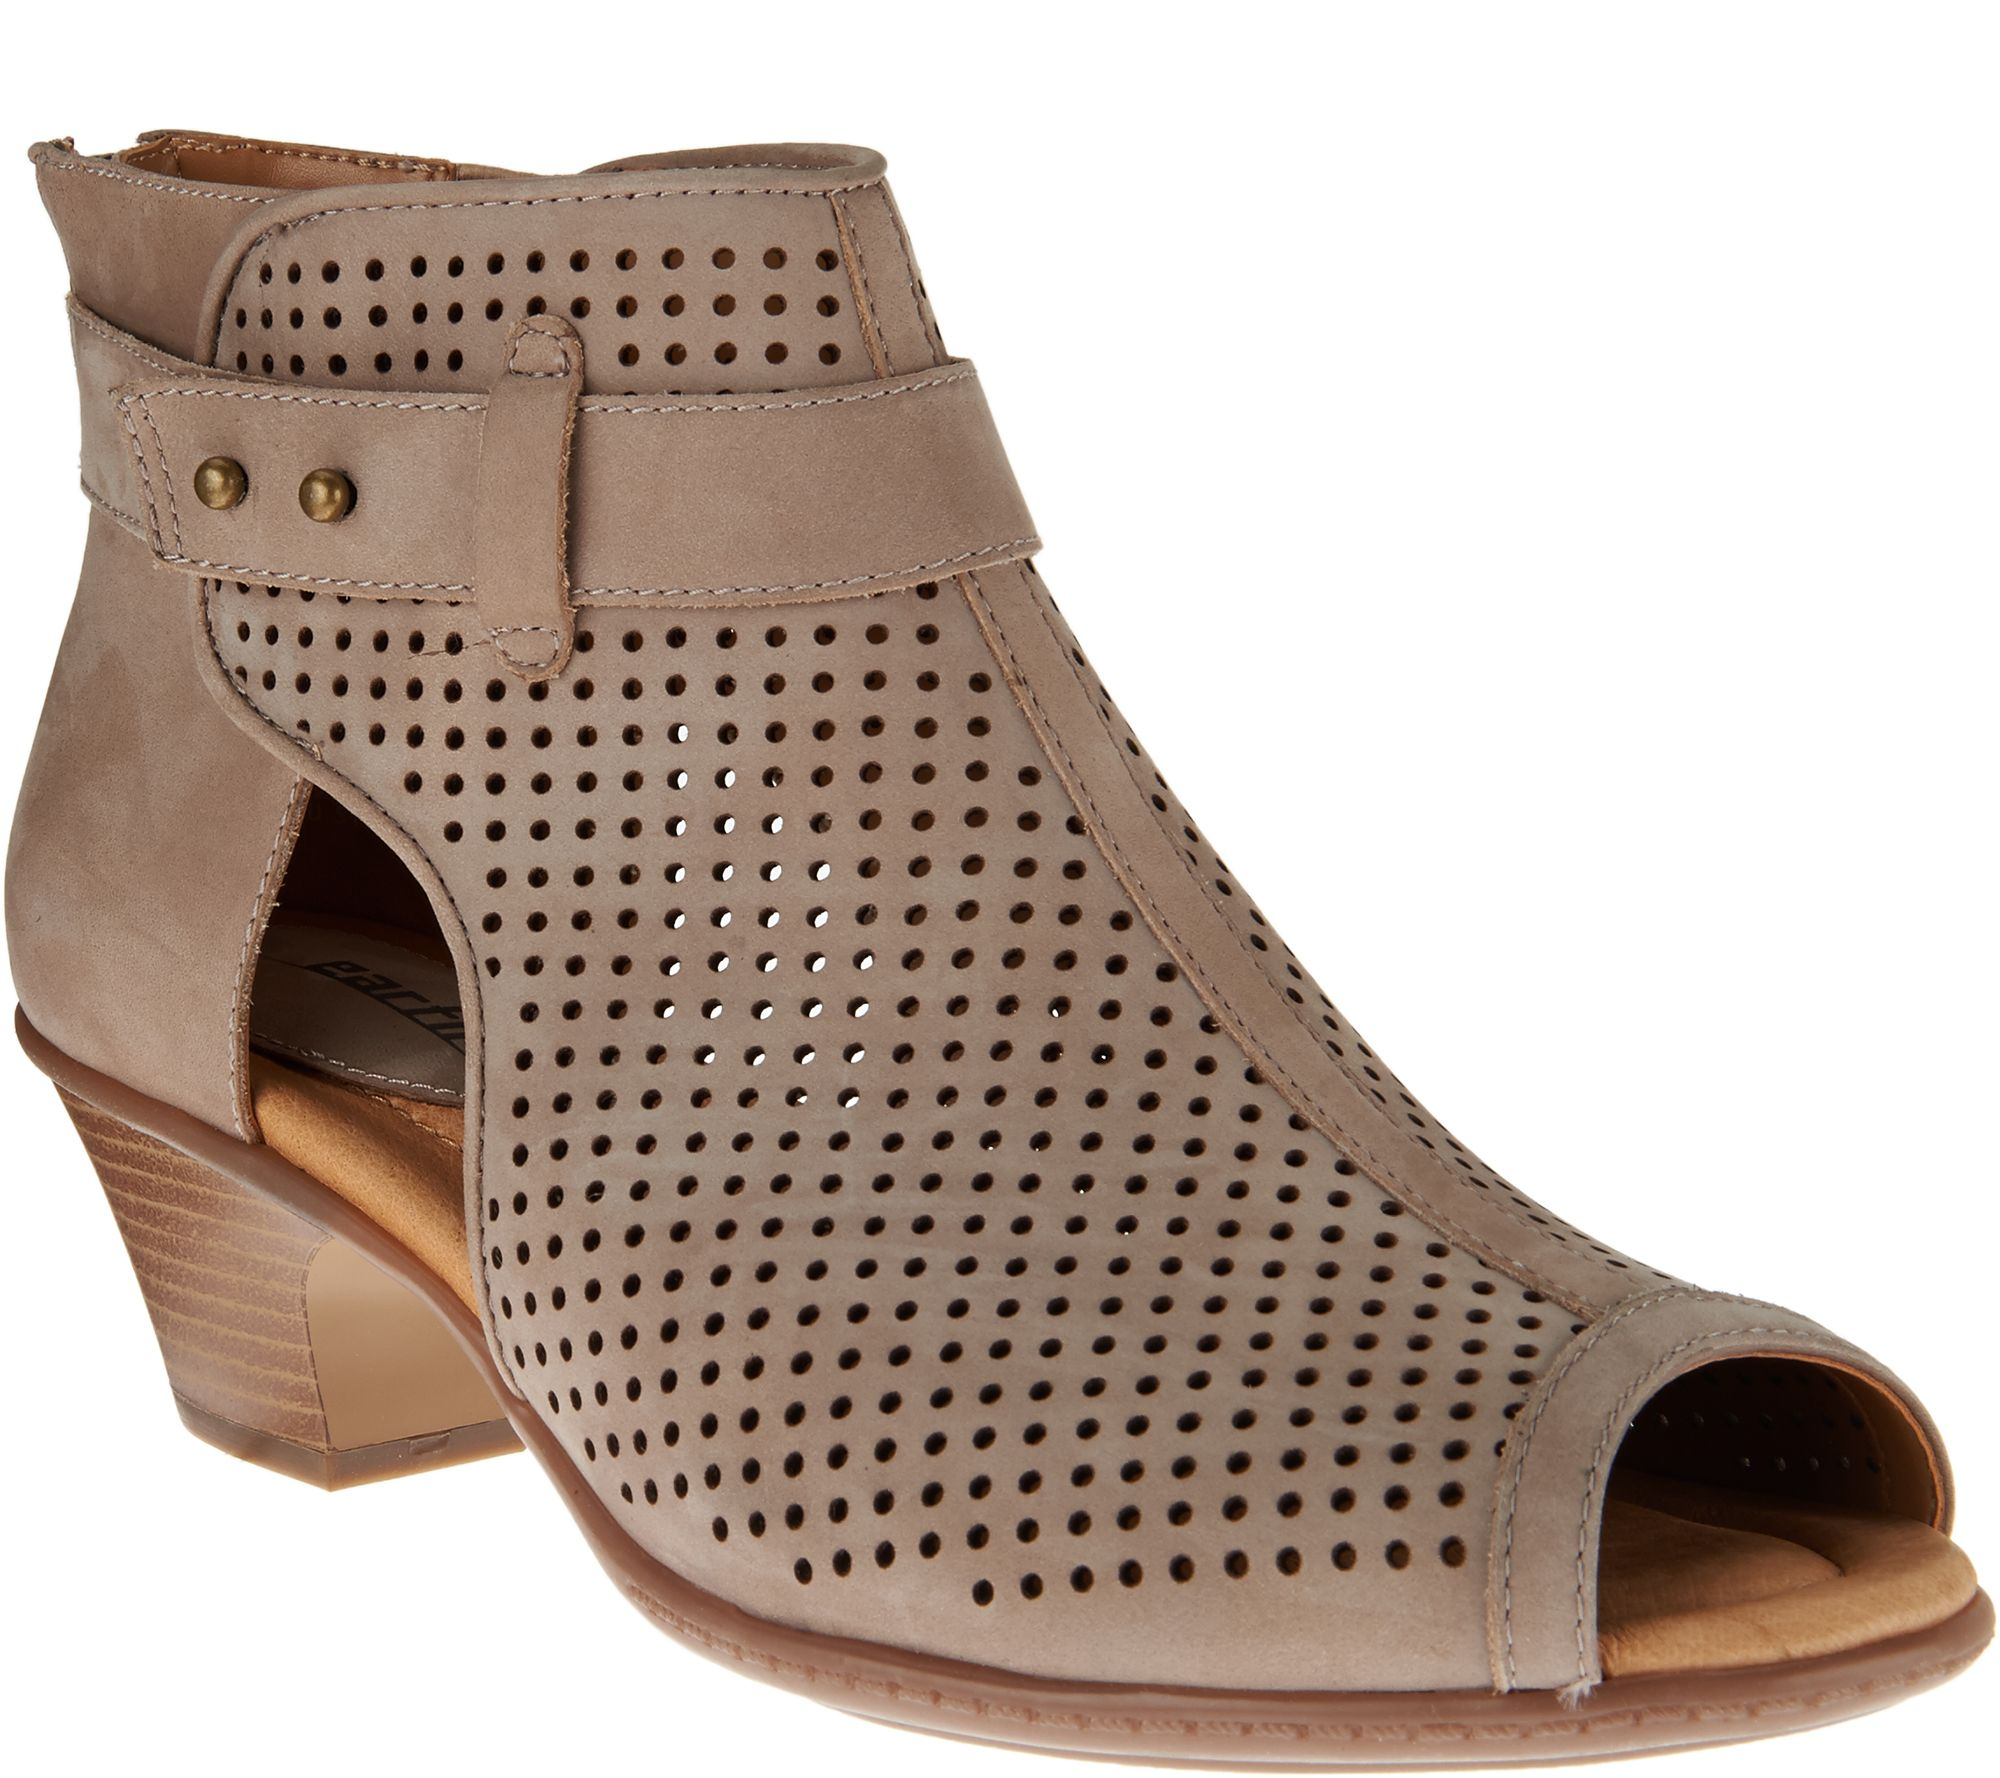 Dressy Shoes Low Heel For Women